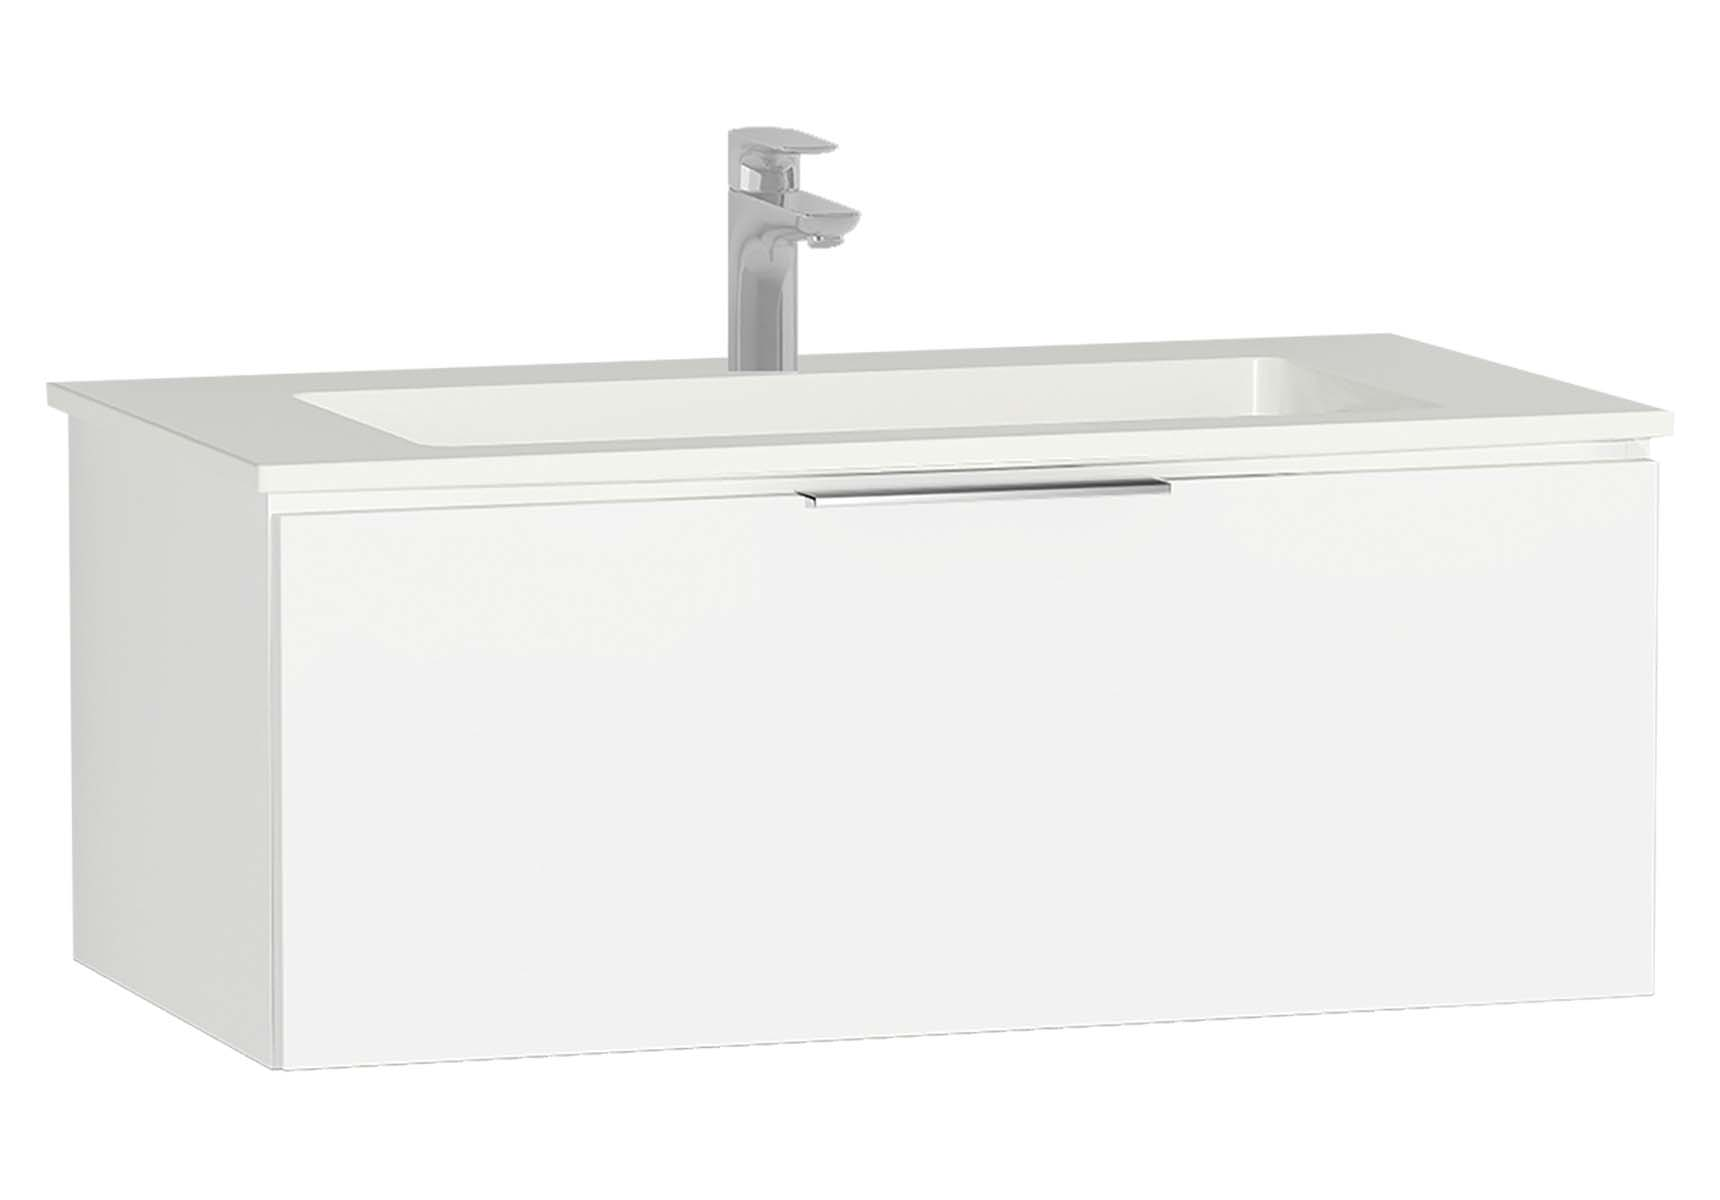 Central Washbasin Unit with 1 drawer, 90 cm, White High Gloss, Infinit Washbasin